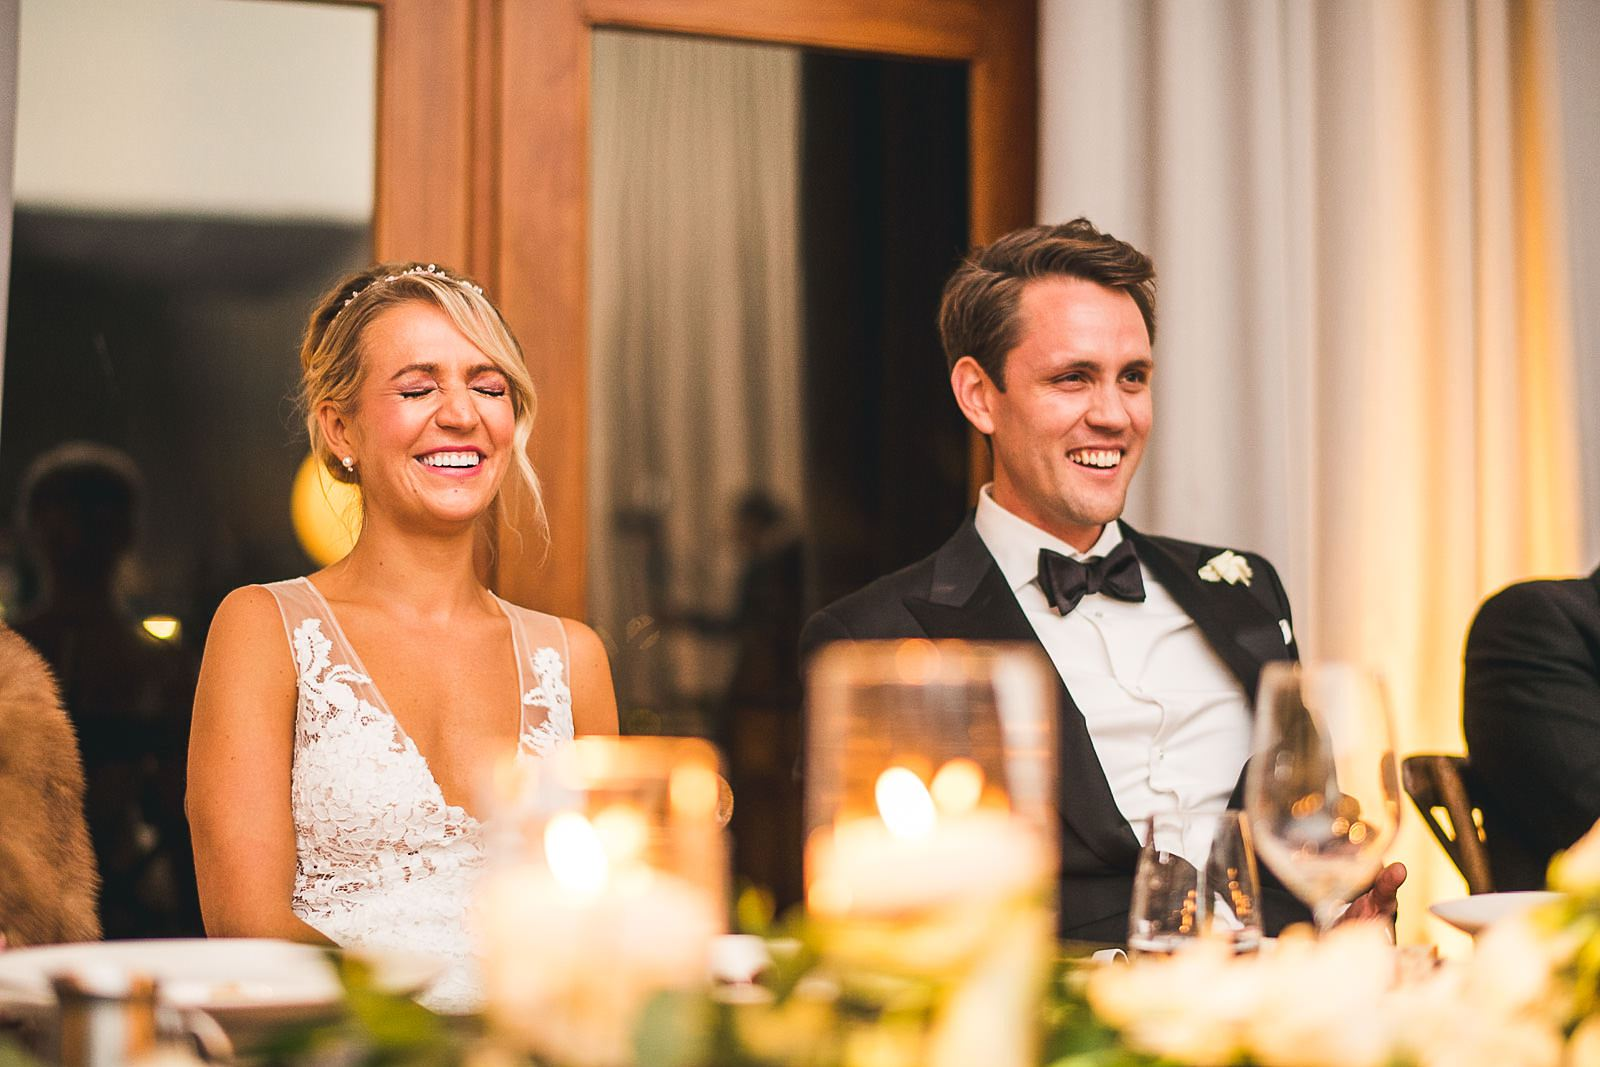 55 bride and groom reactions to speeches - Ivy Room Wedding // Audrey + Tyler